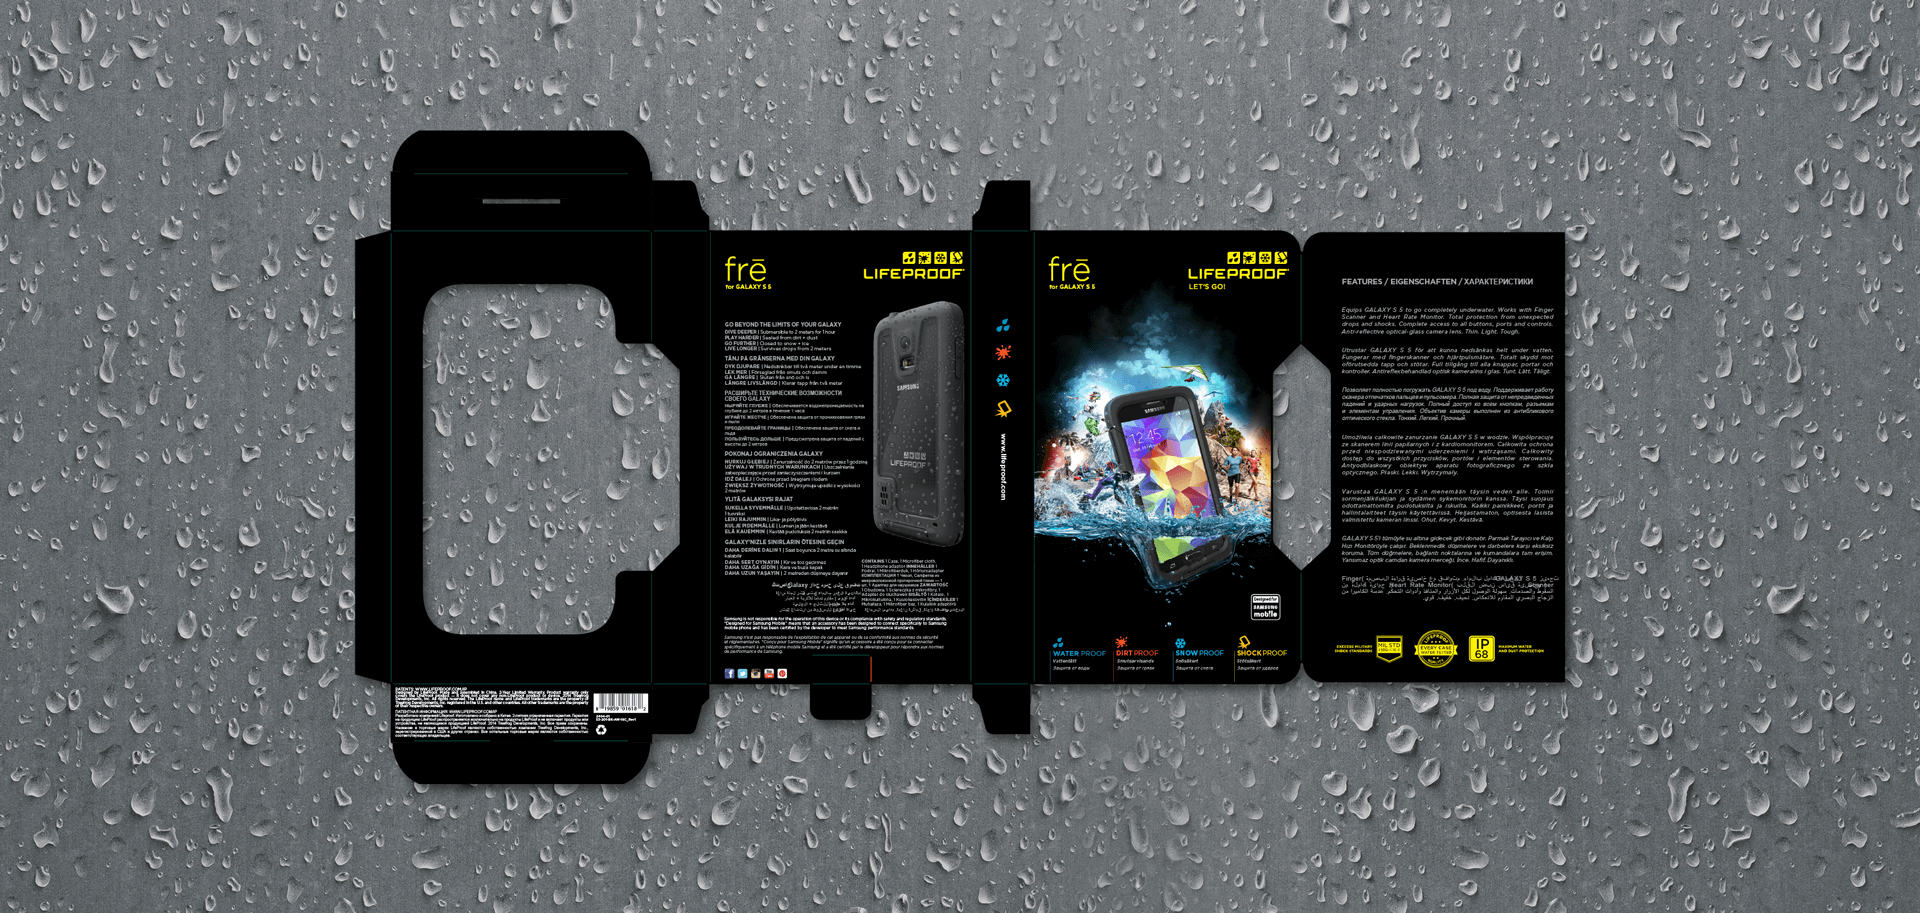 Lifeproof product packaging design